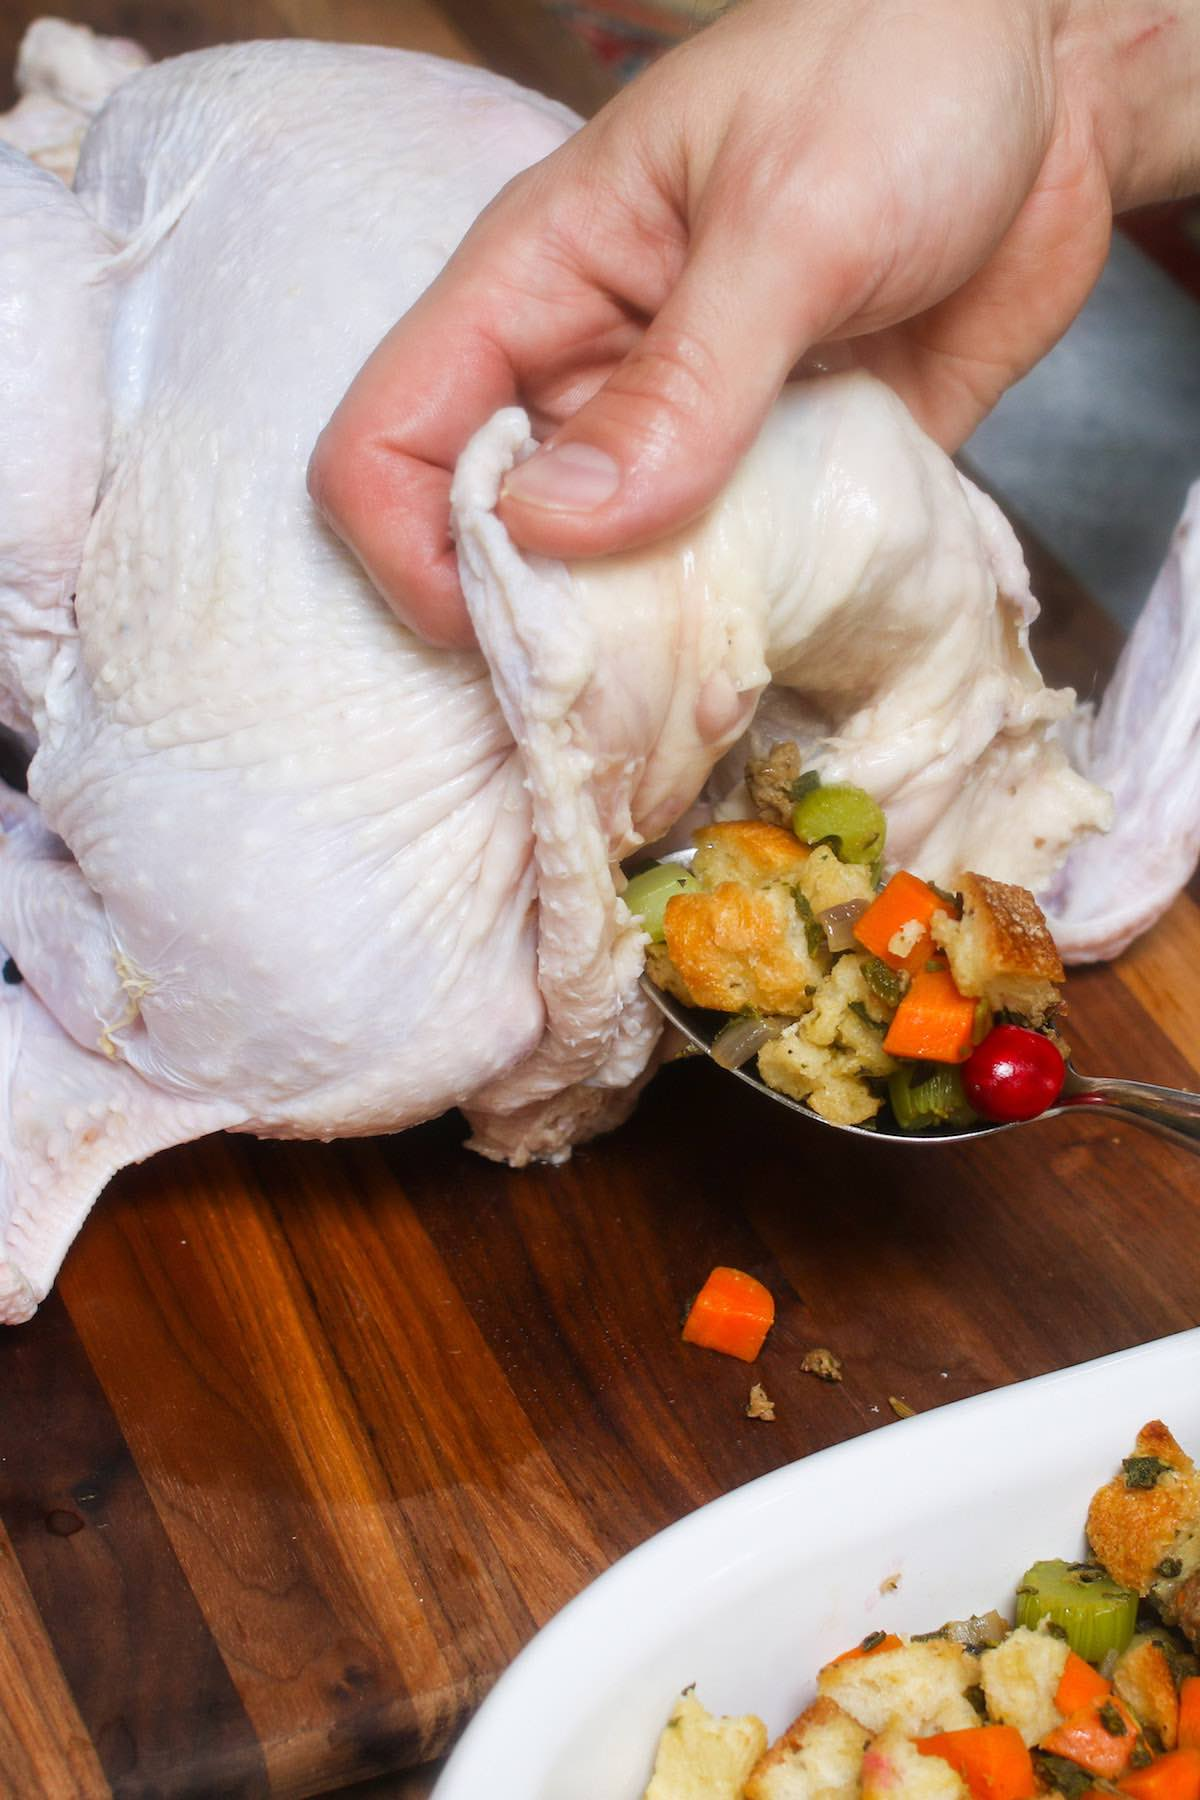 Stuffing a turkey from the neck end by lifting the flap of skin to expose the cavity